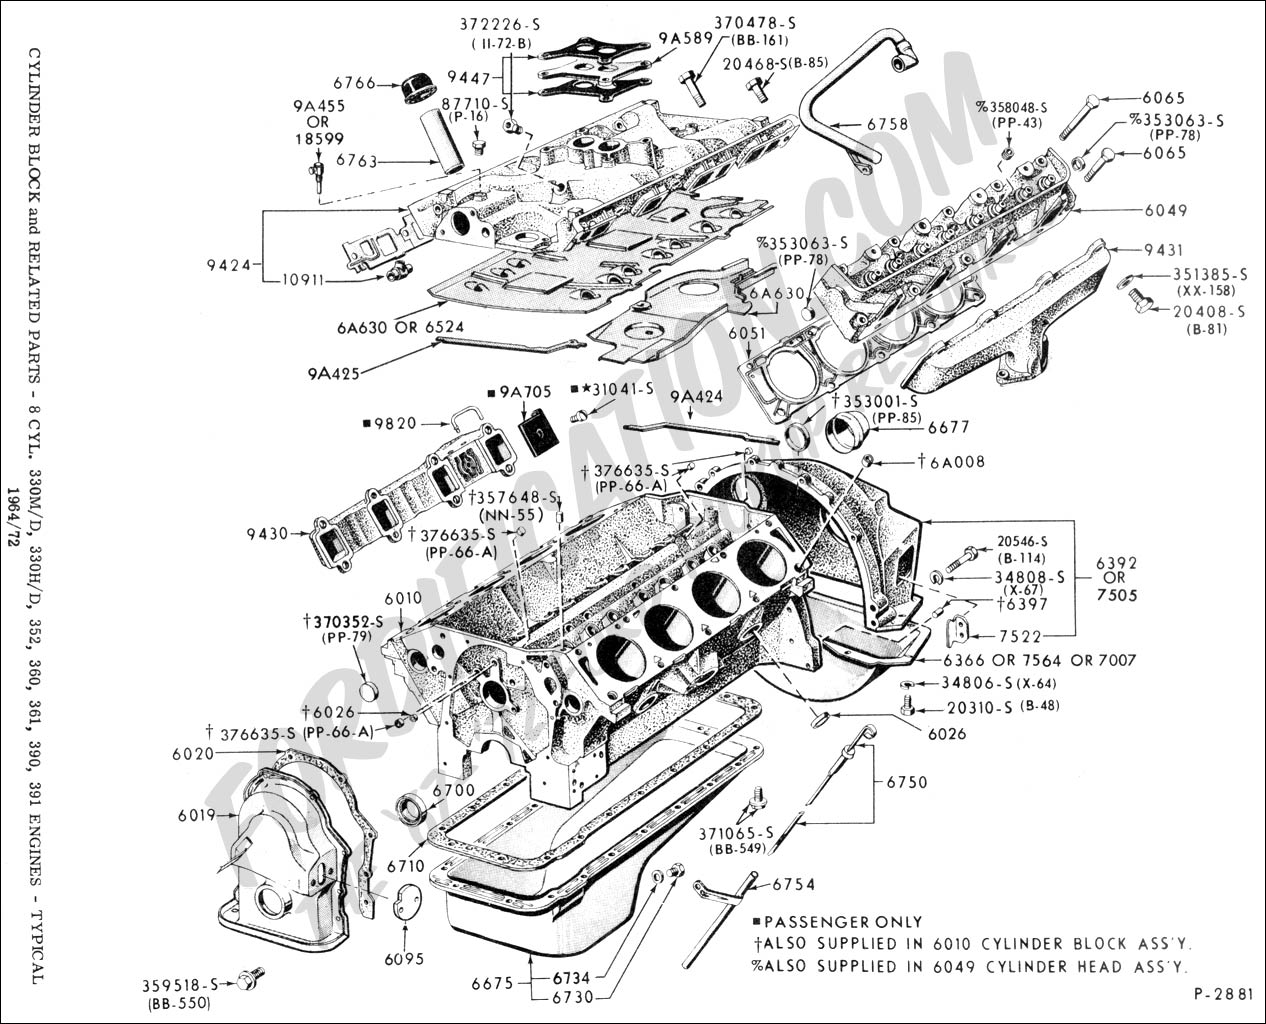 99 galant engine diagram wiring libraryford truck technical drawings and schematics section e engine and related components 1999 mitsubishi galant engine